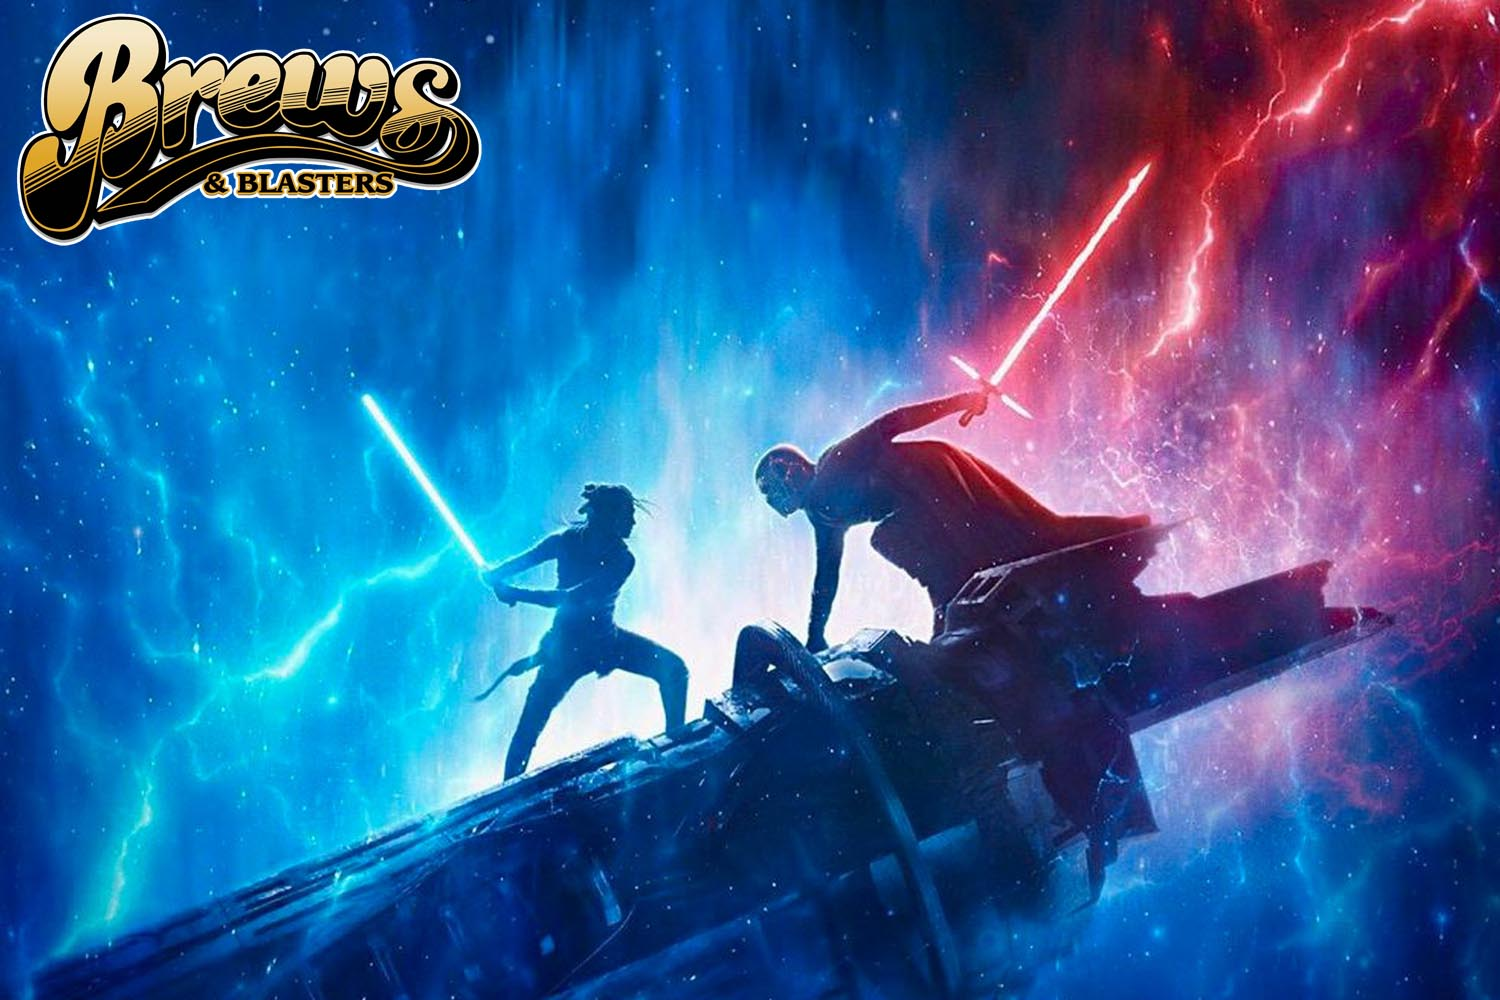 Brews and Blasters 239: Throwing Chairs I: Chris and Joe Review Star Wars: The Rise of Skywalker